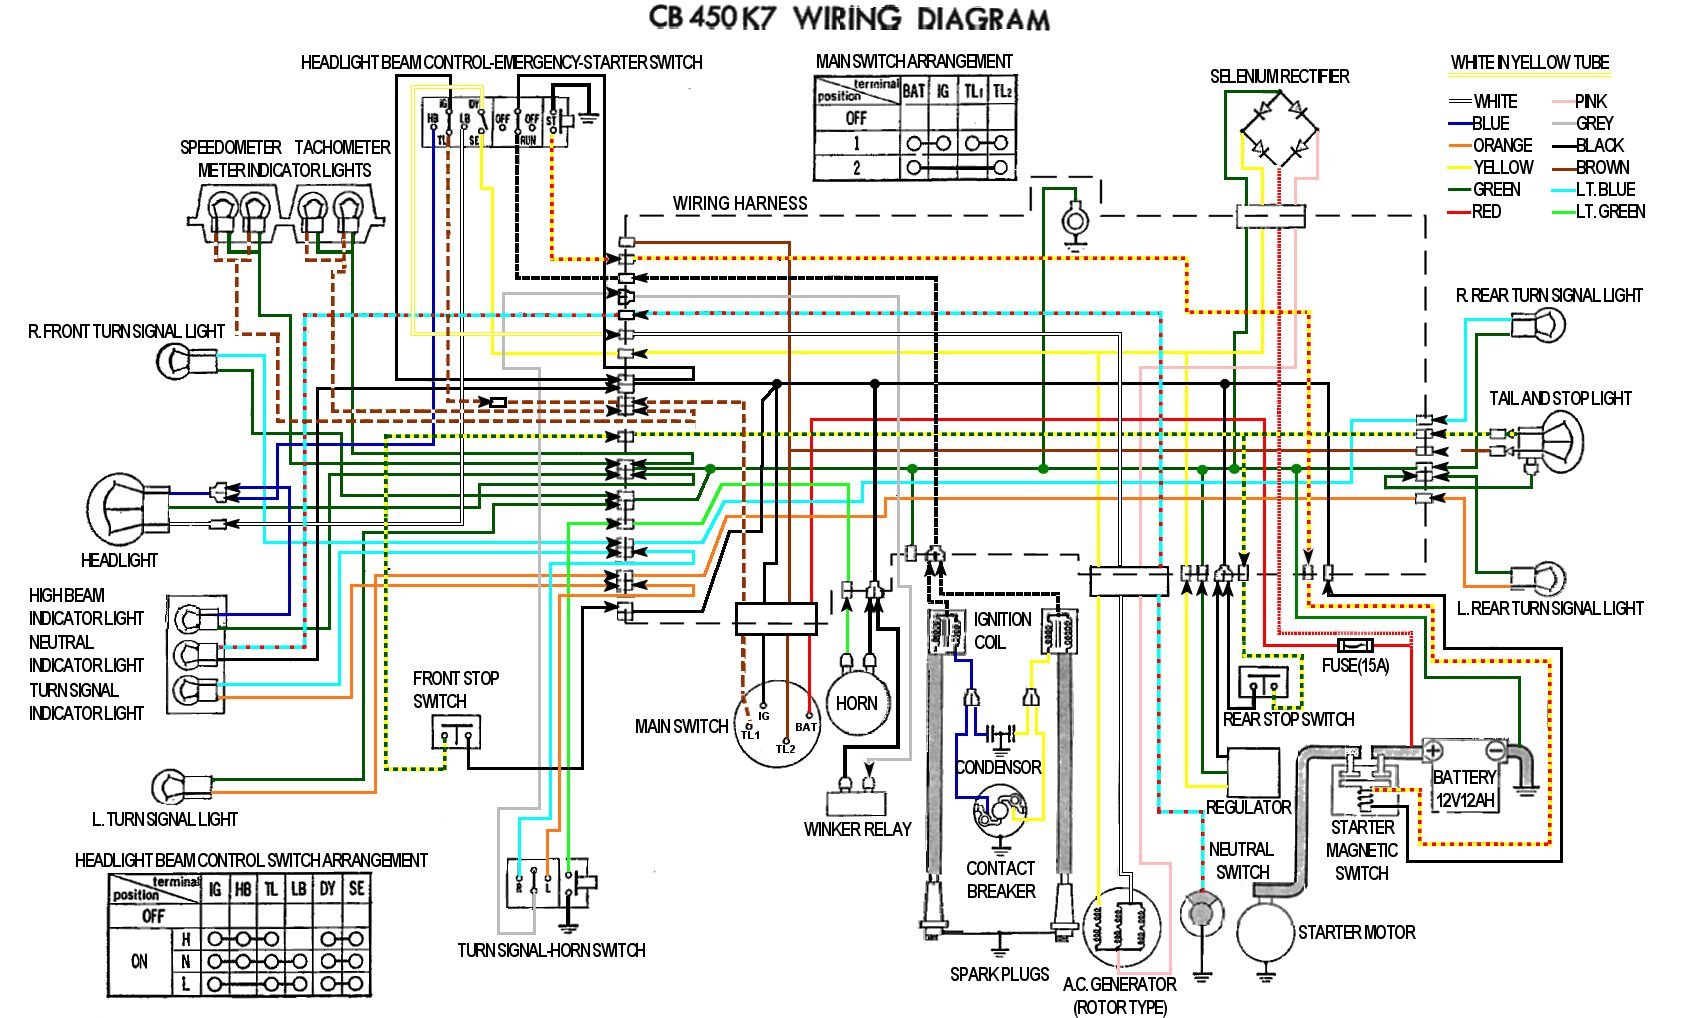 cb450 color wiring diagram now corrected rh hondatwins net cb350 wiring diagram 1970 cb450 wiring diagram